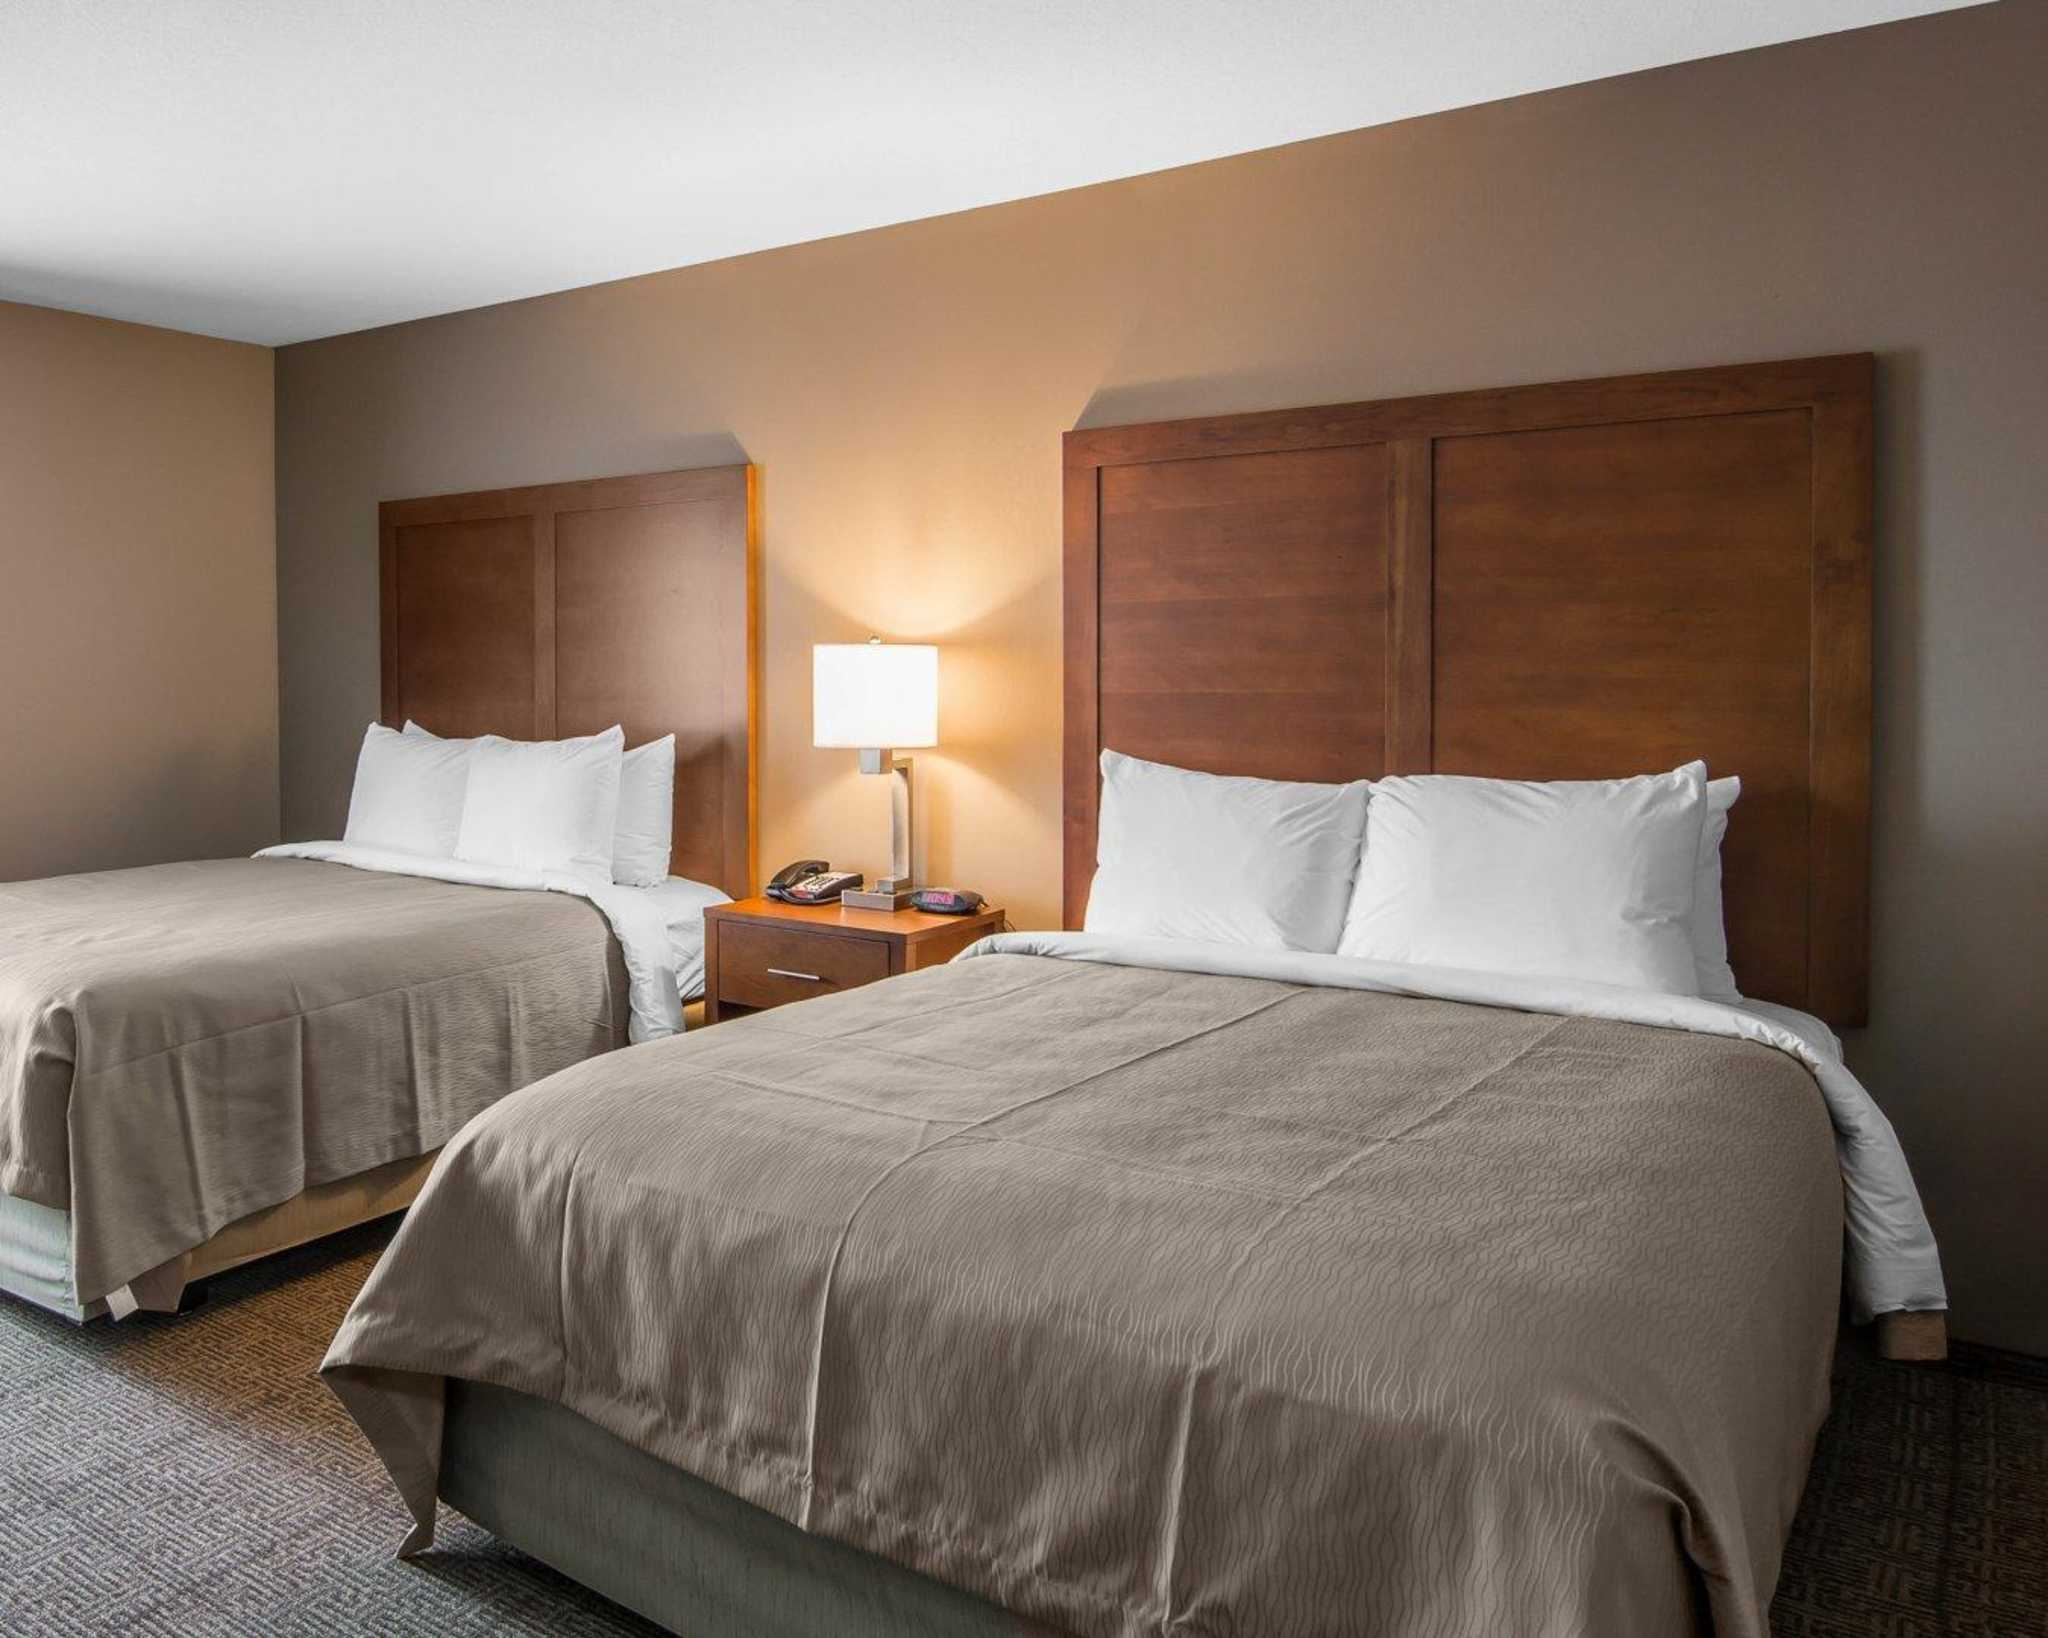 Comfort Inn South Chesterfield - Colonial Heights image 5